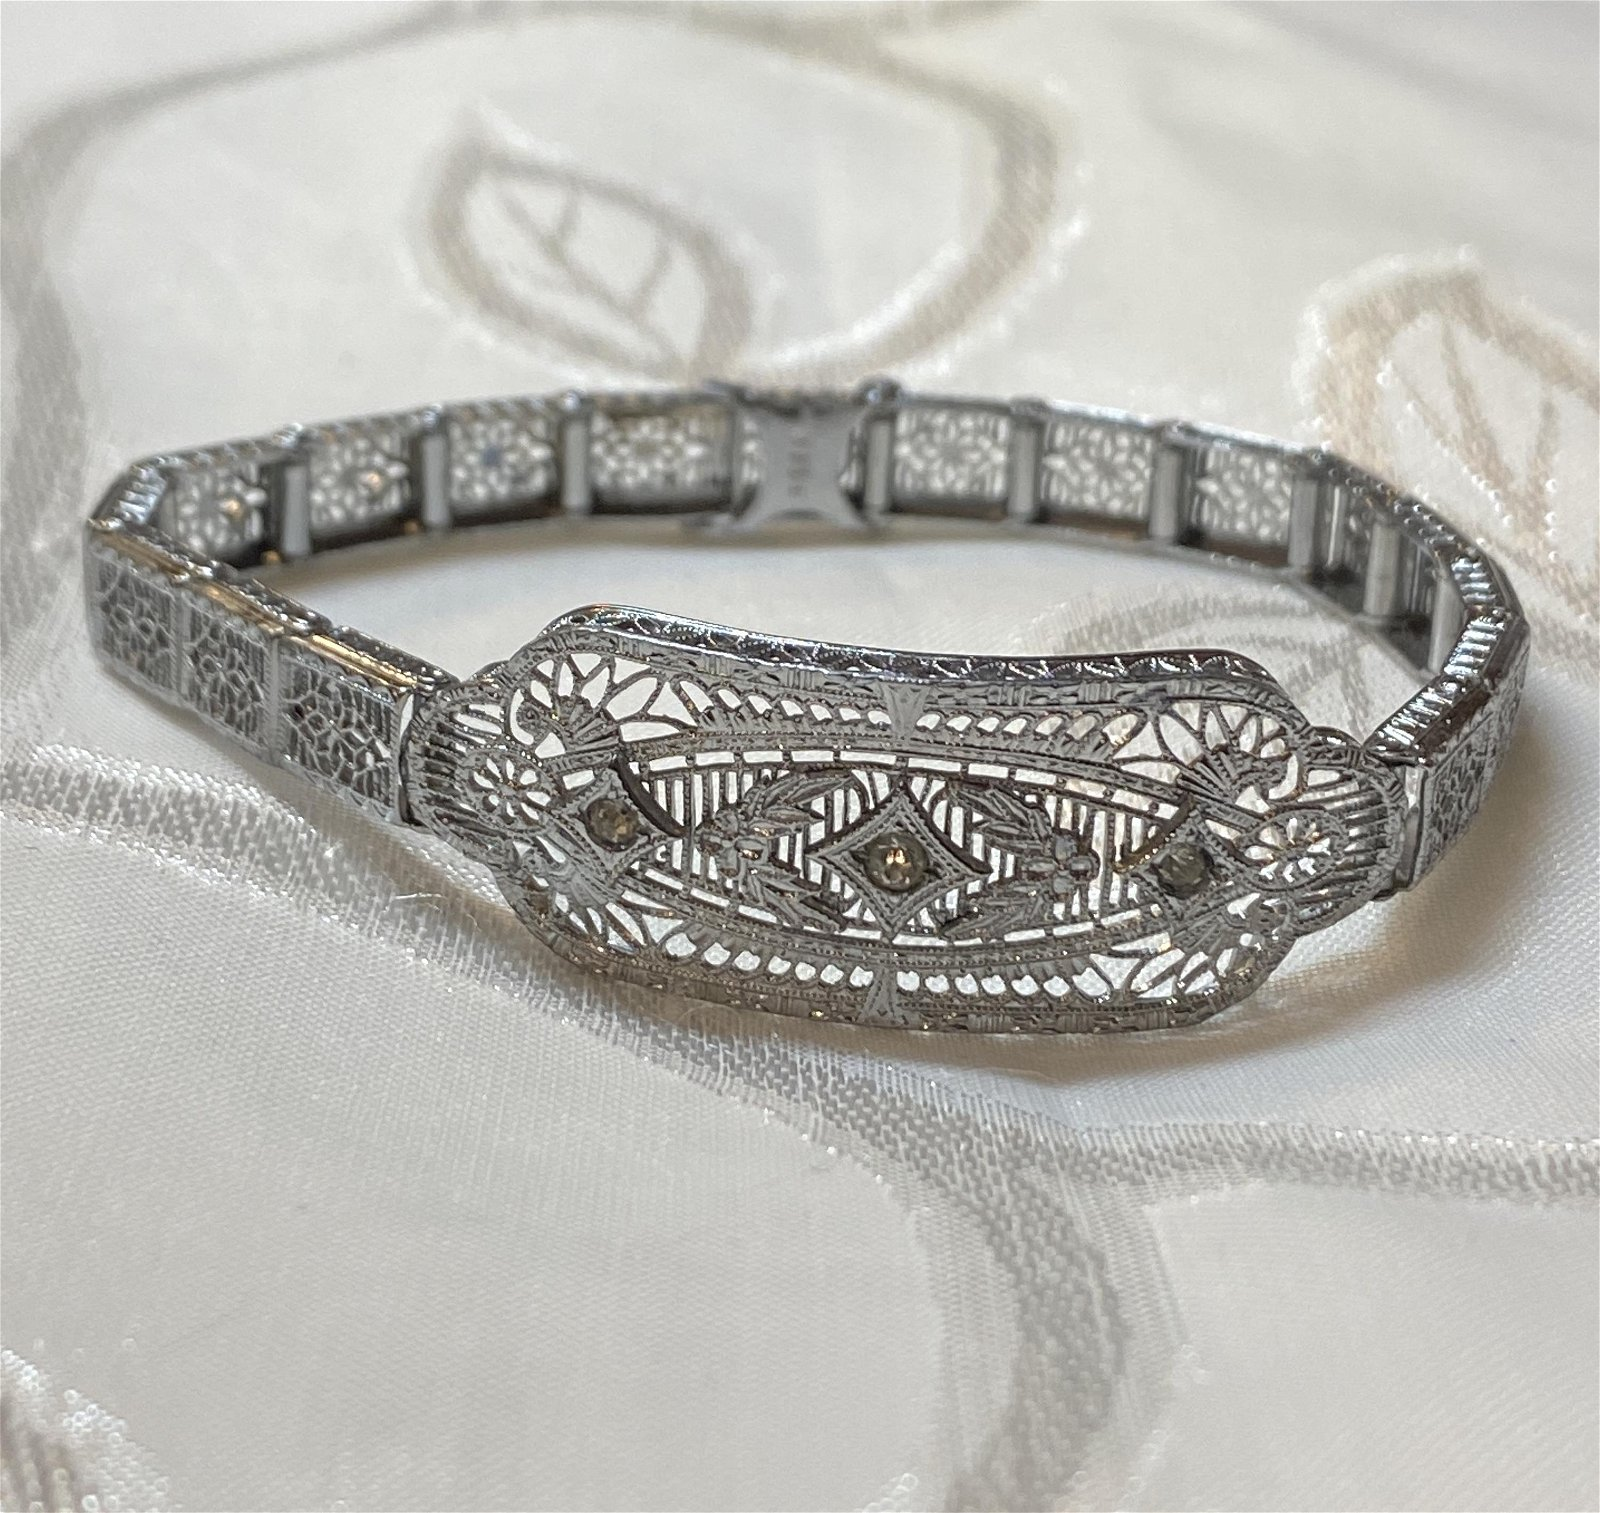 ART DECO STERLING SILVER BRACELET